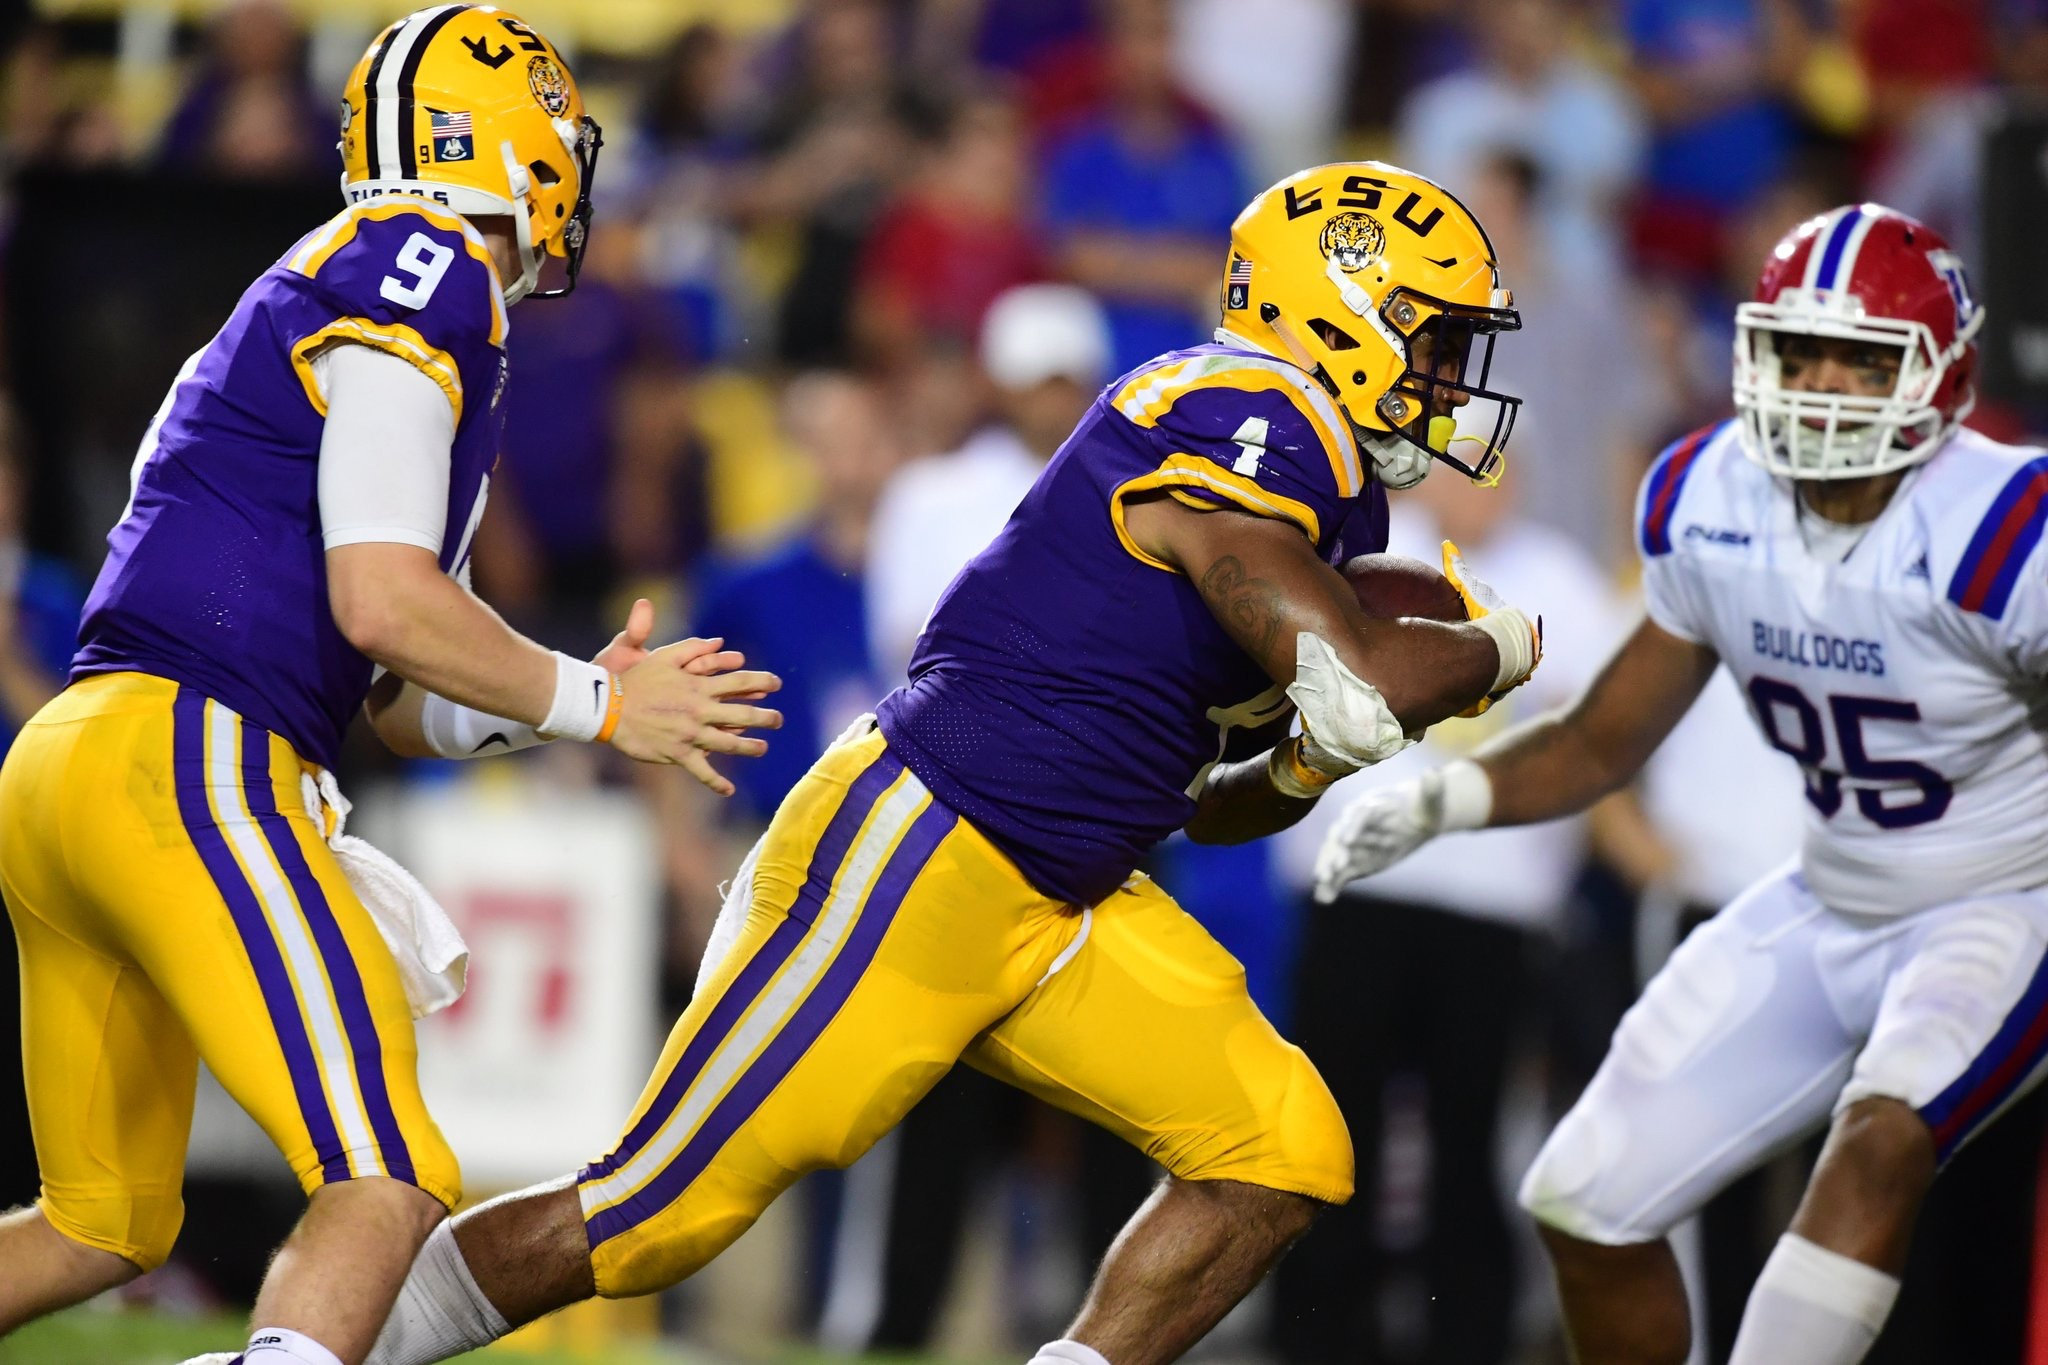 Football runs past Louisiana Tech, 38-21